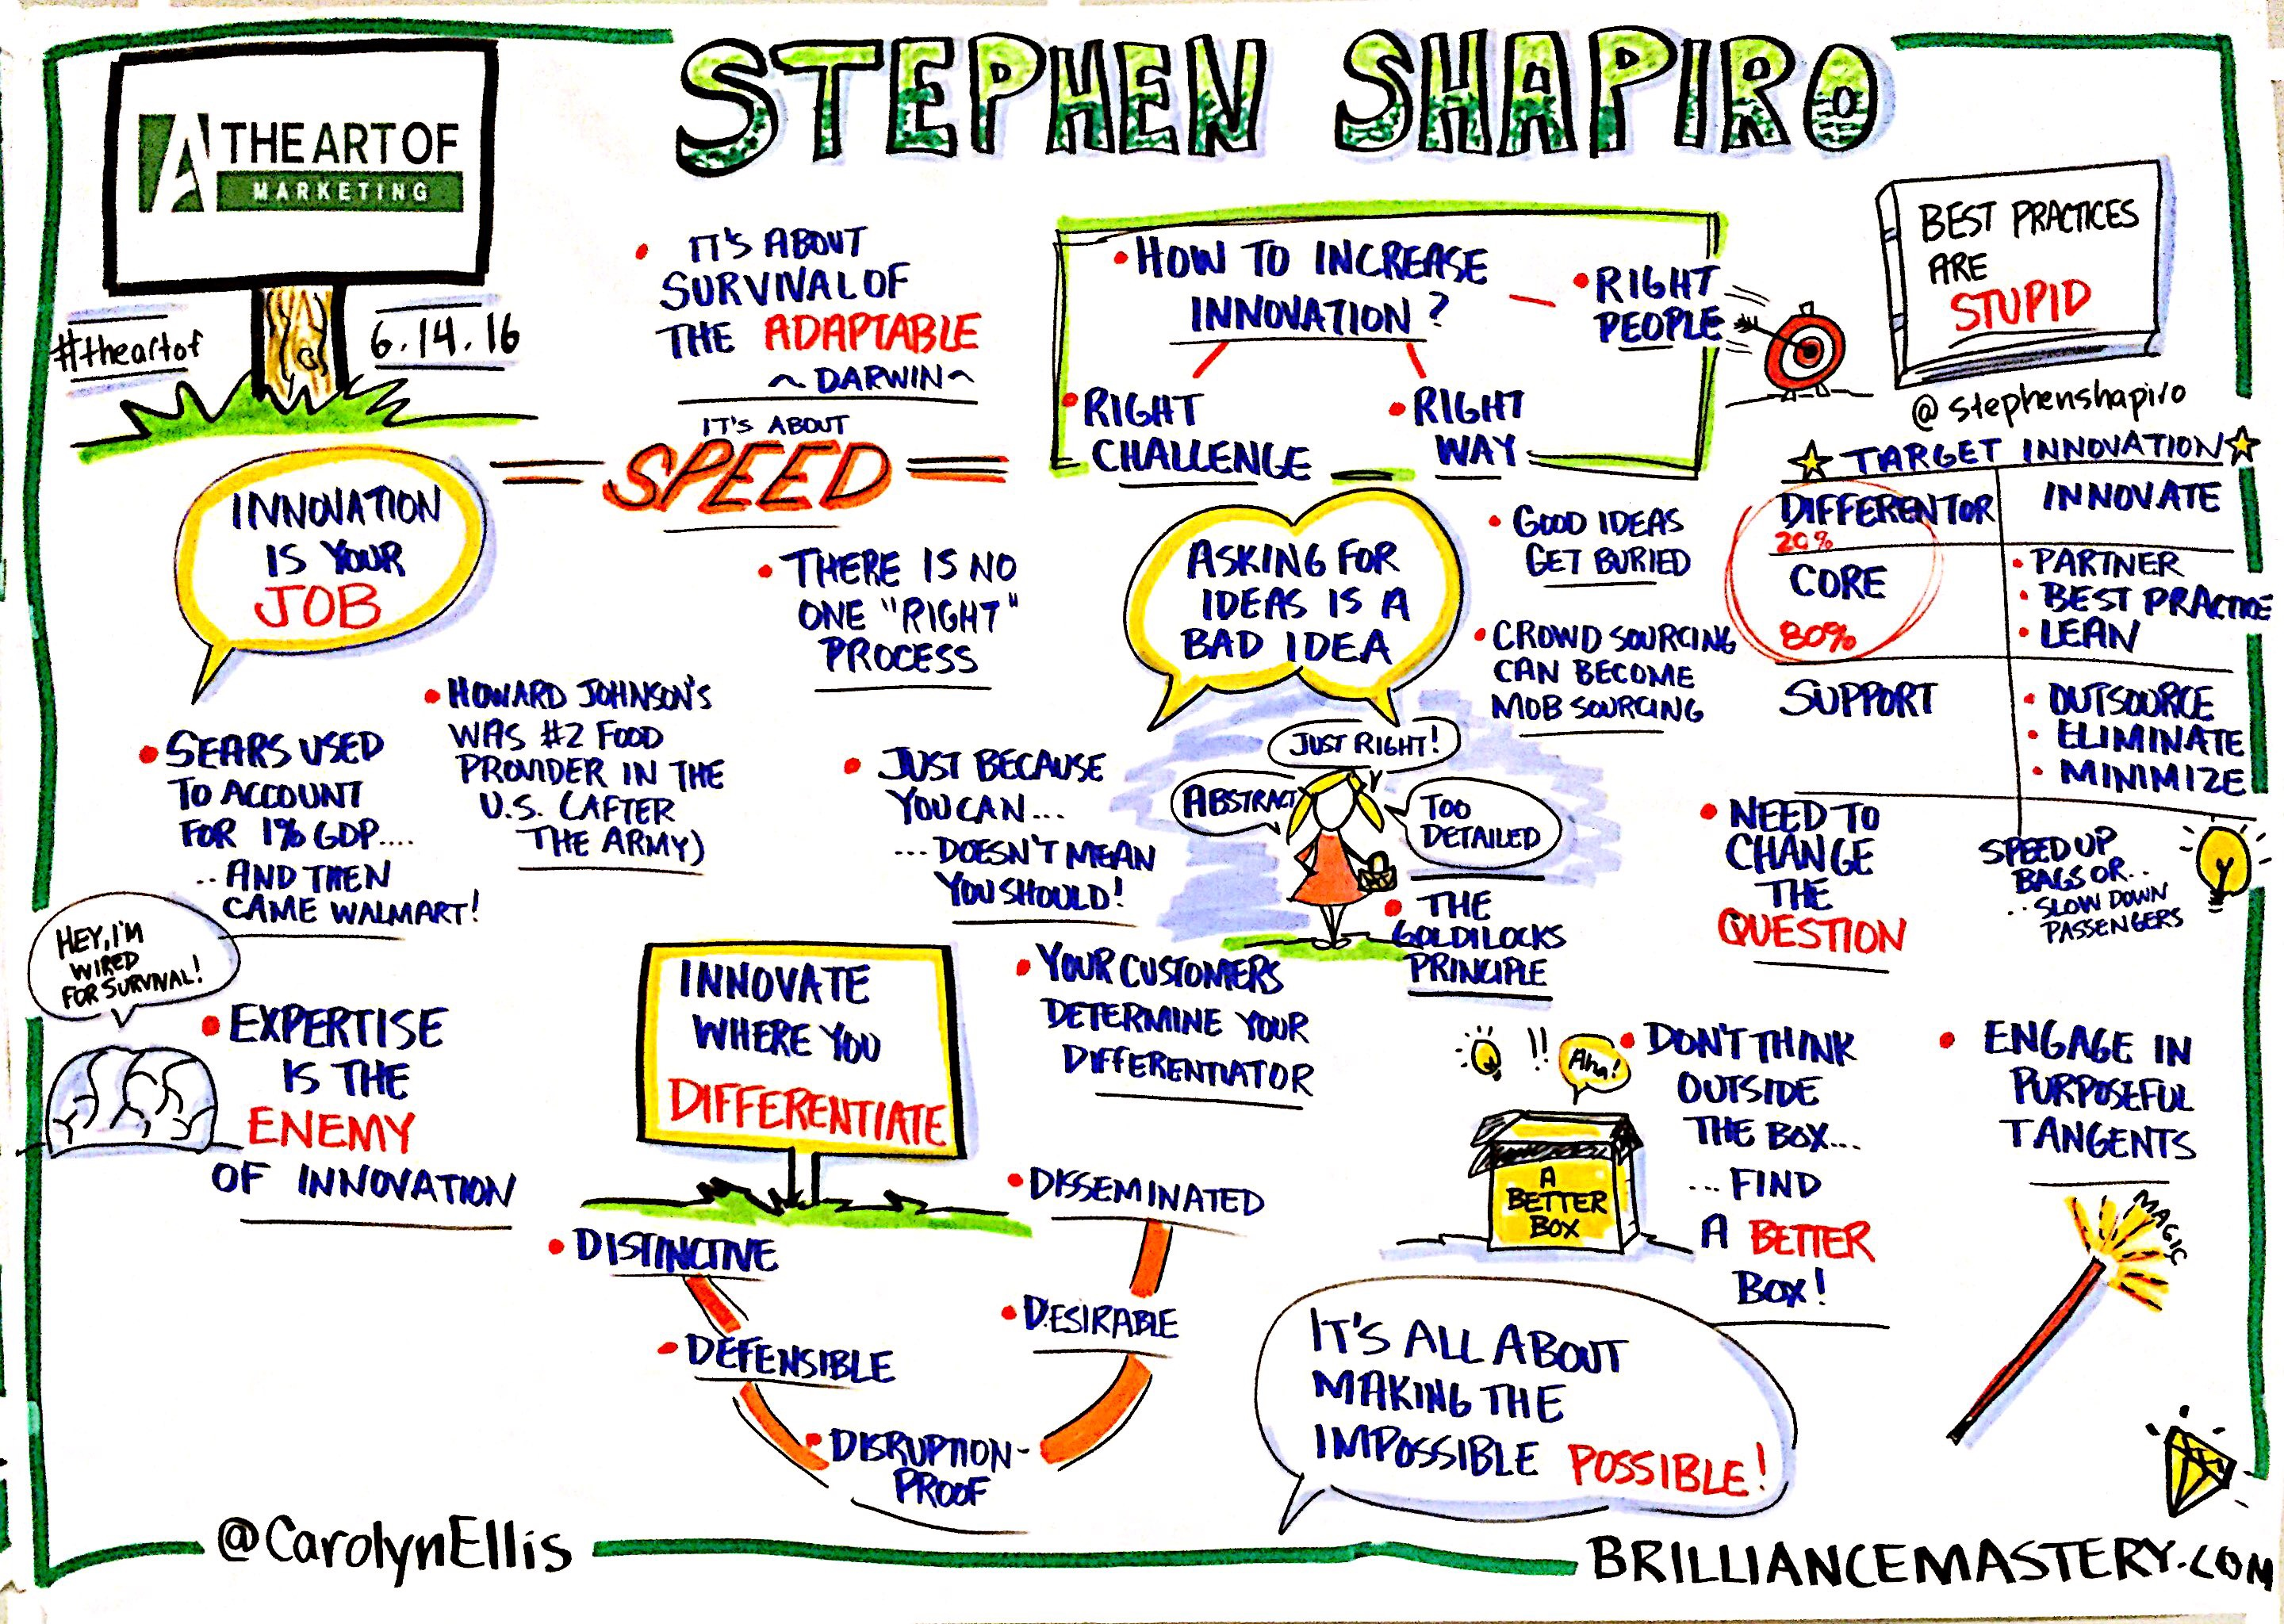 Stephen-Shapiro-graphic-recording-from-the-art-of-marketing